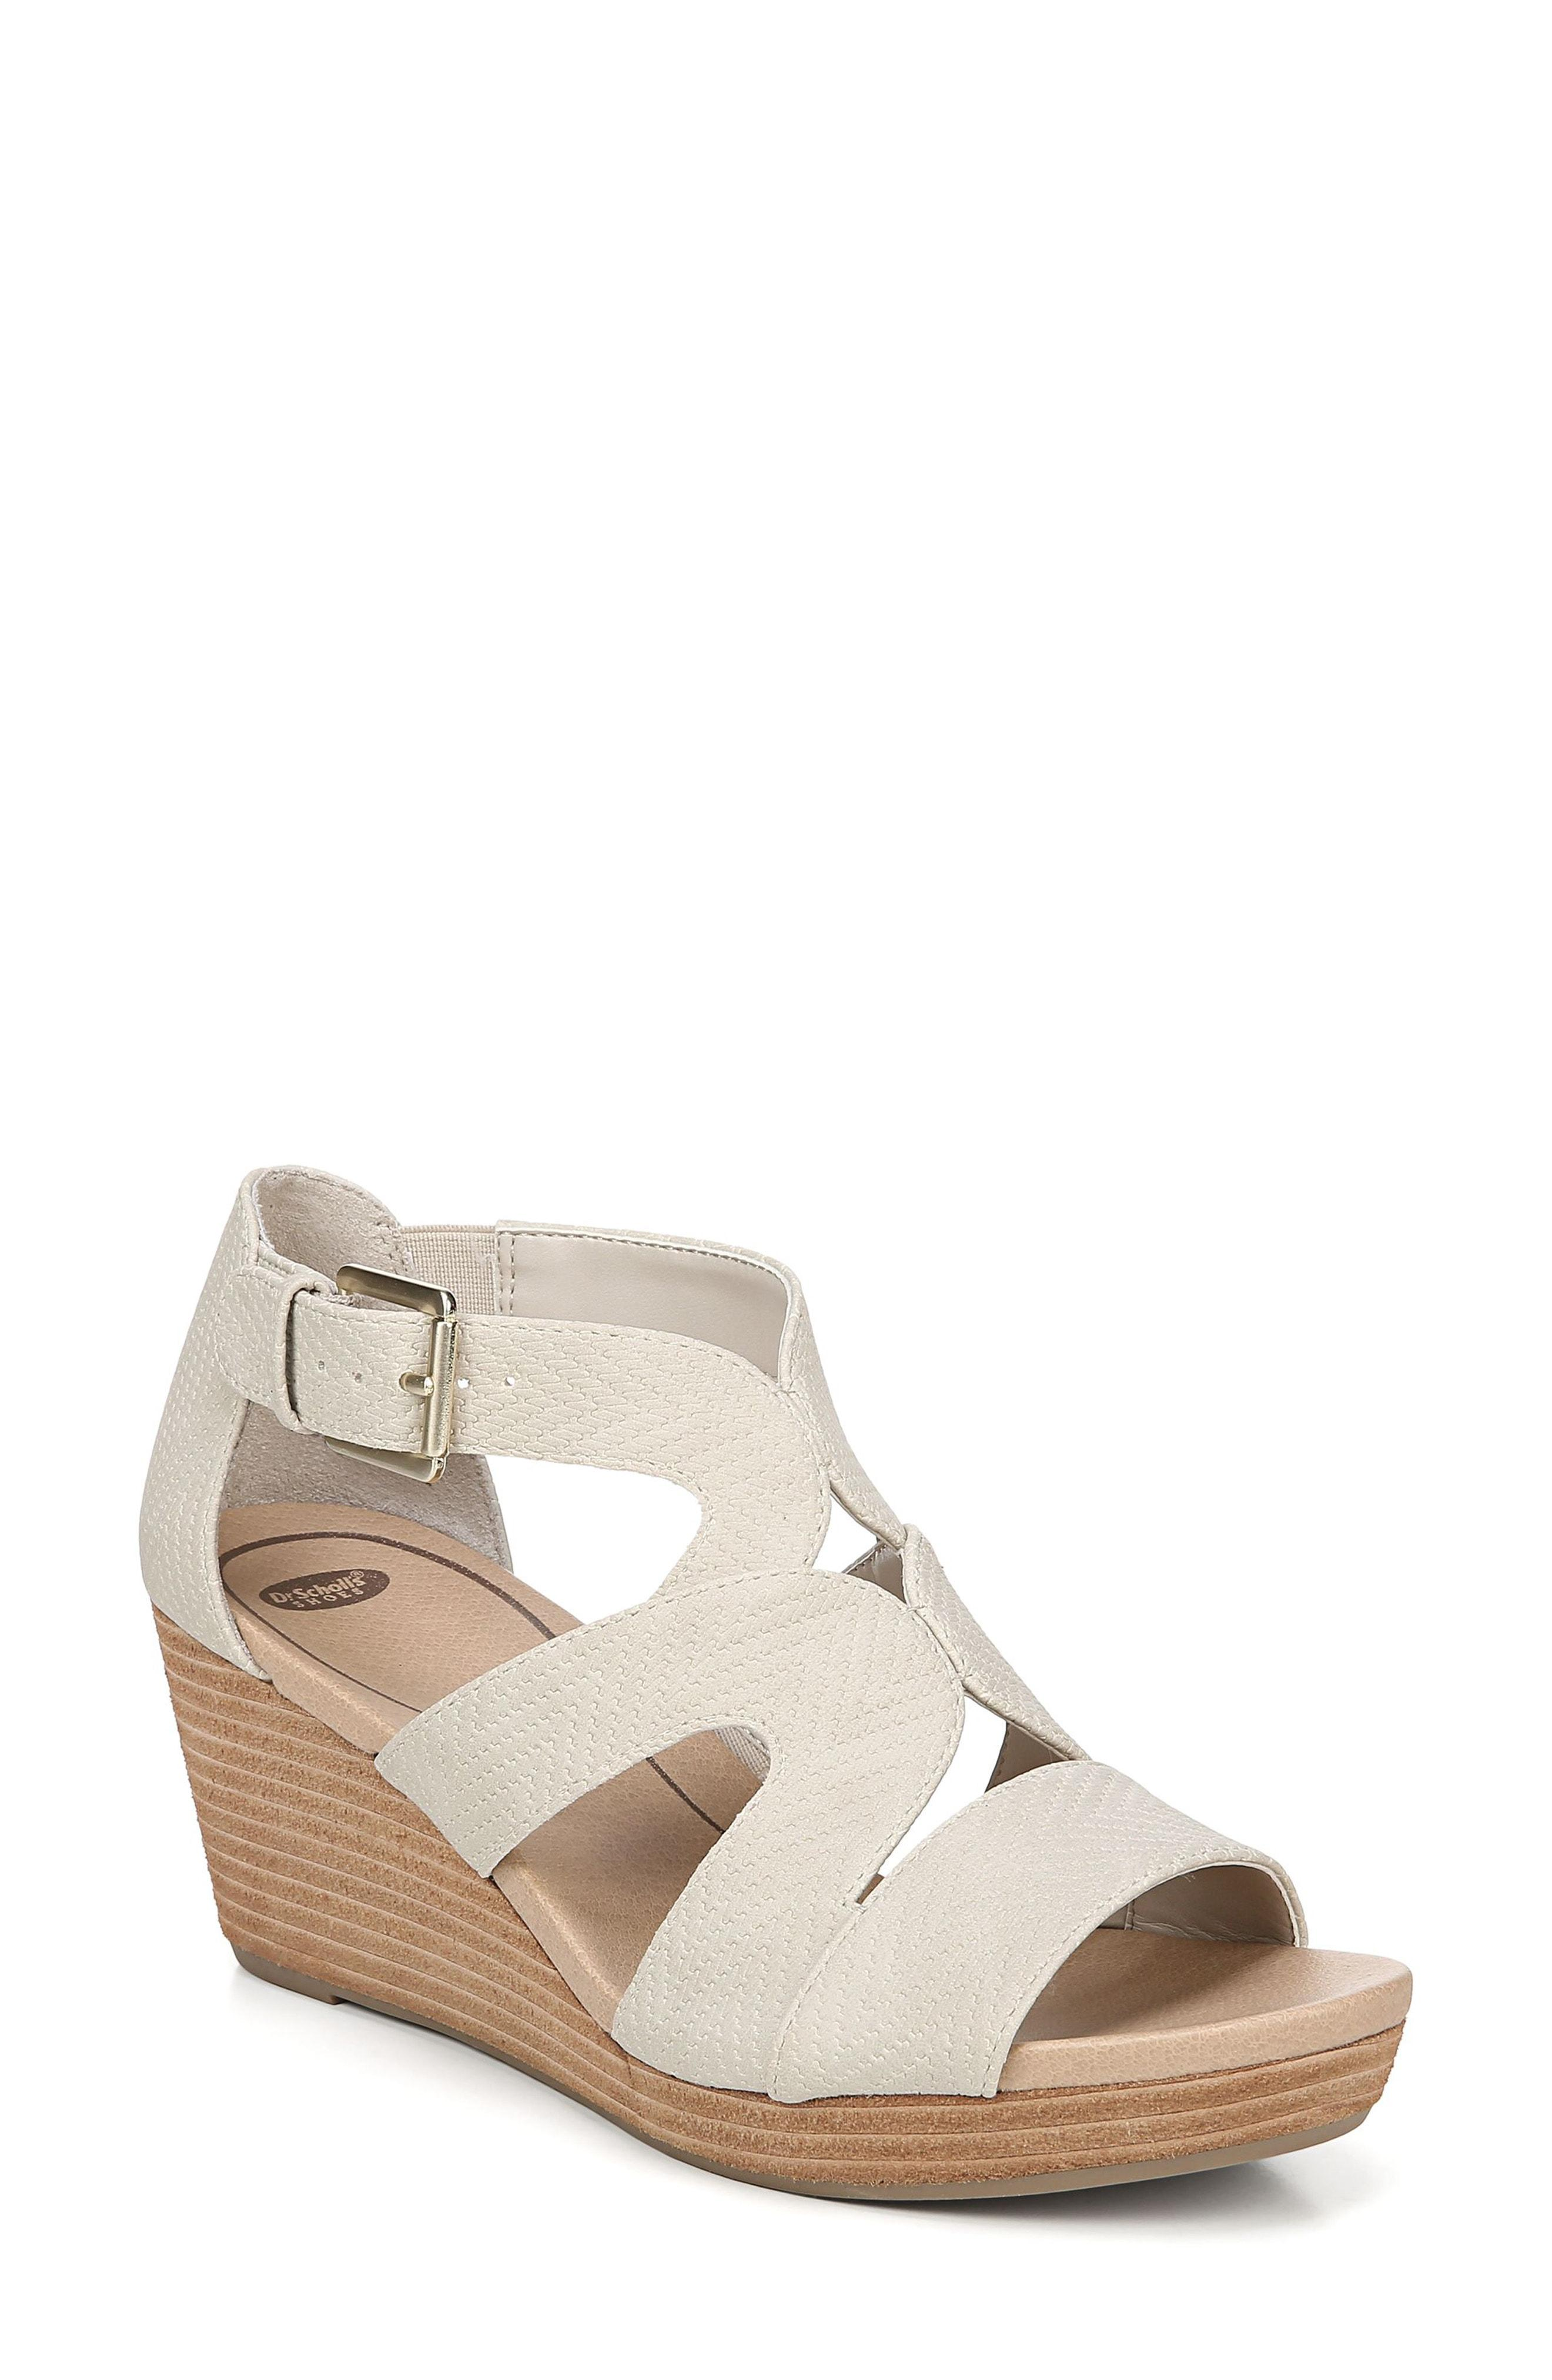 5bfdd69b295 Dr. Scholls. Women s Bailey Wedge Sandal